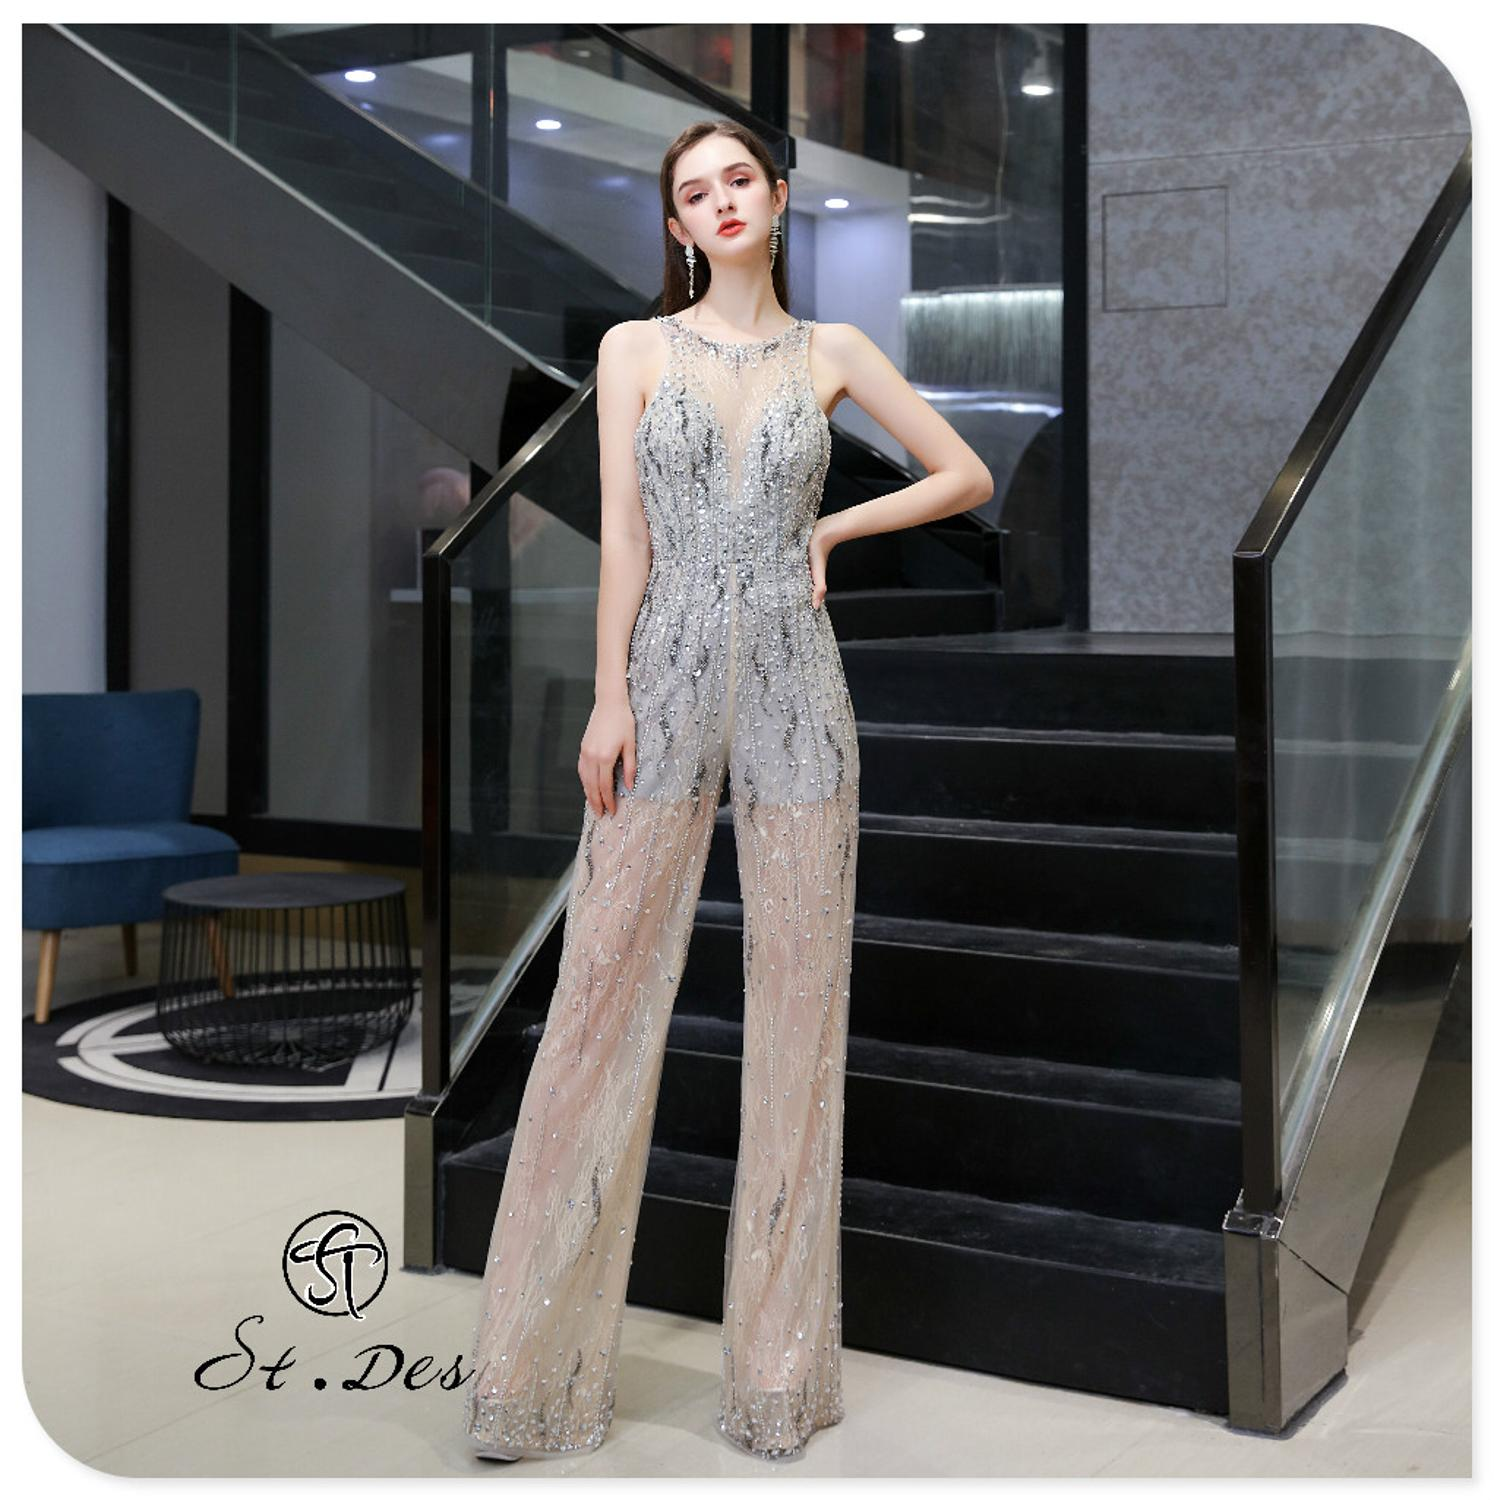 S.T.DES Evening Dress 2020 New Arrival Siamese Trousers V-Neck Sliver Sleeveless Floor Length Party Dress